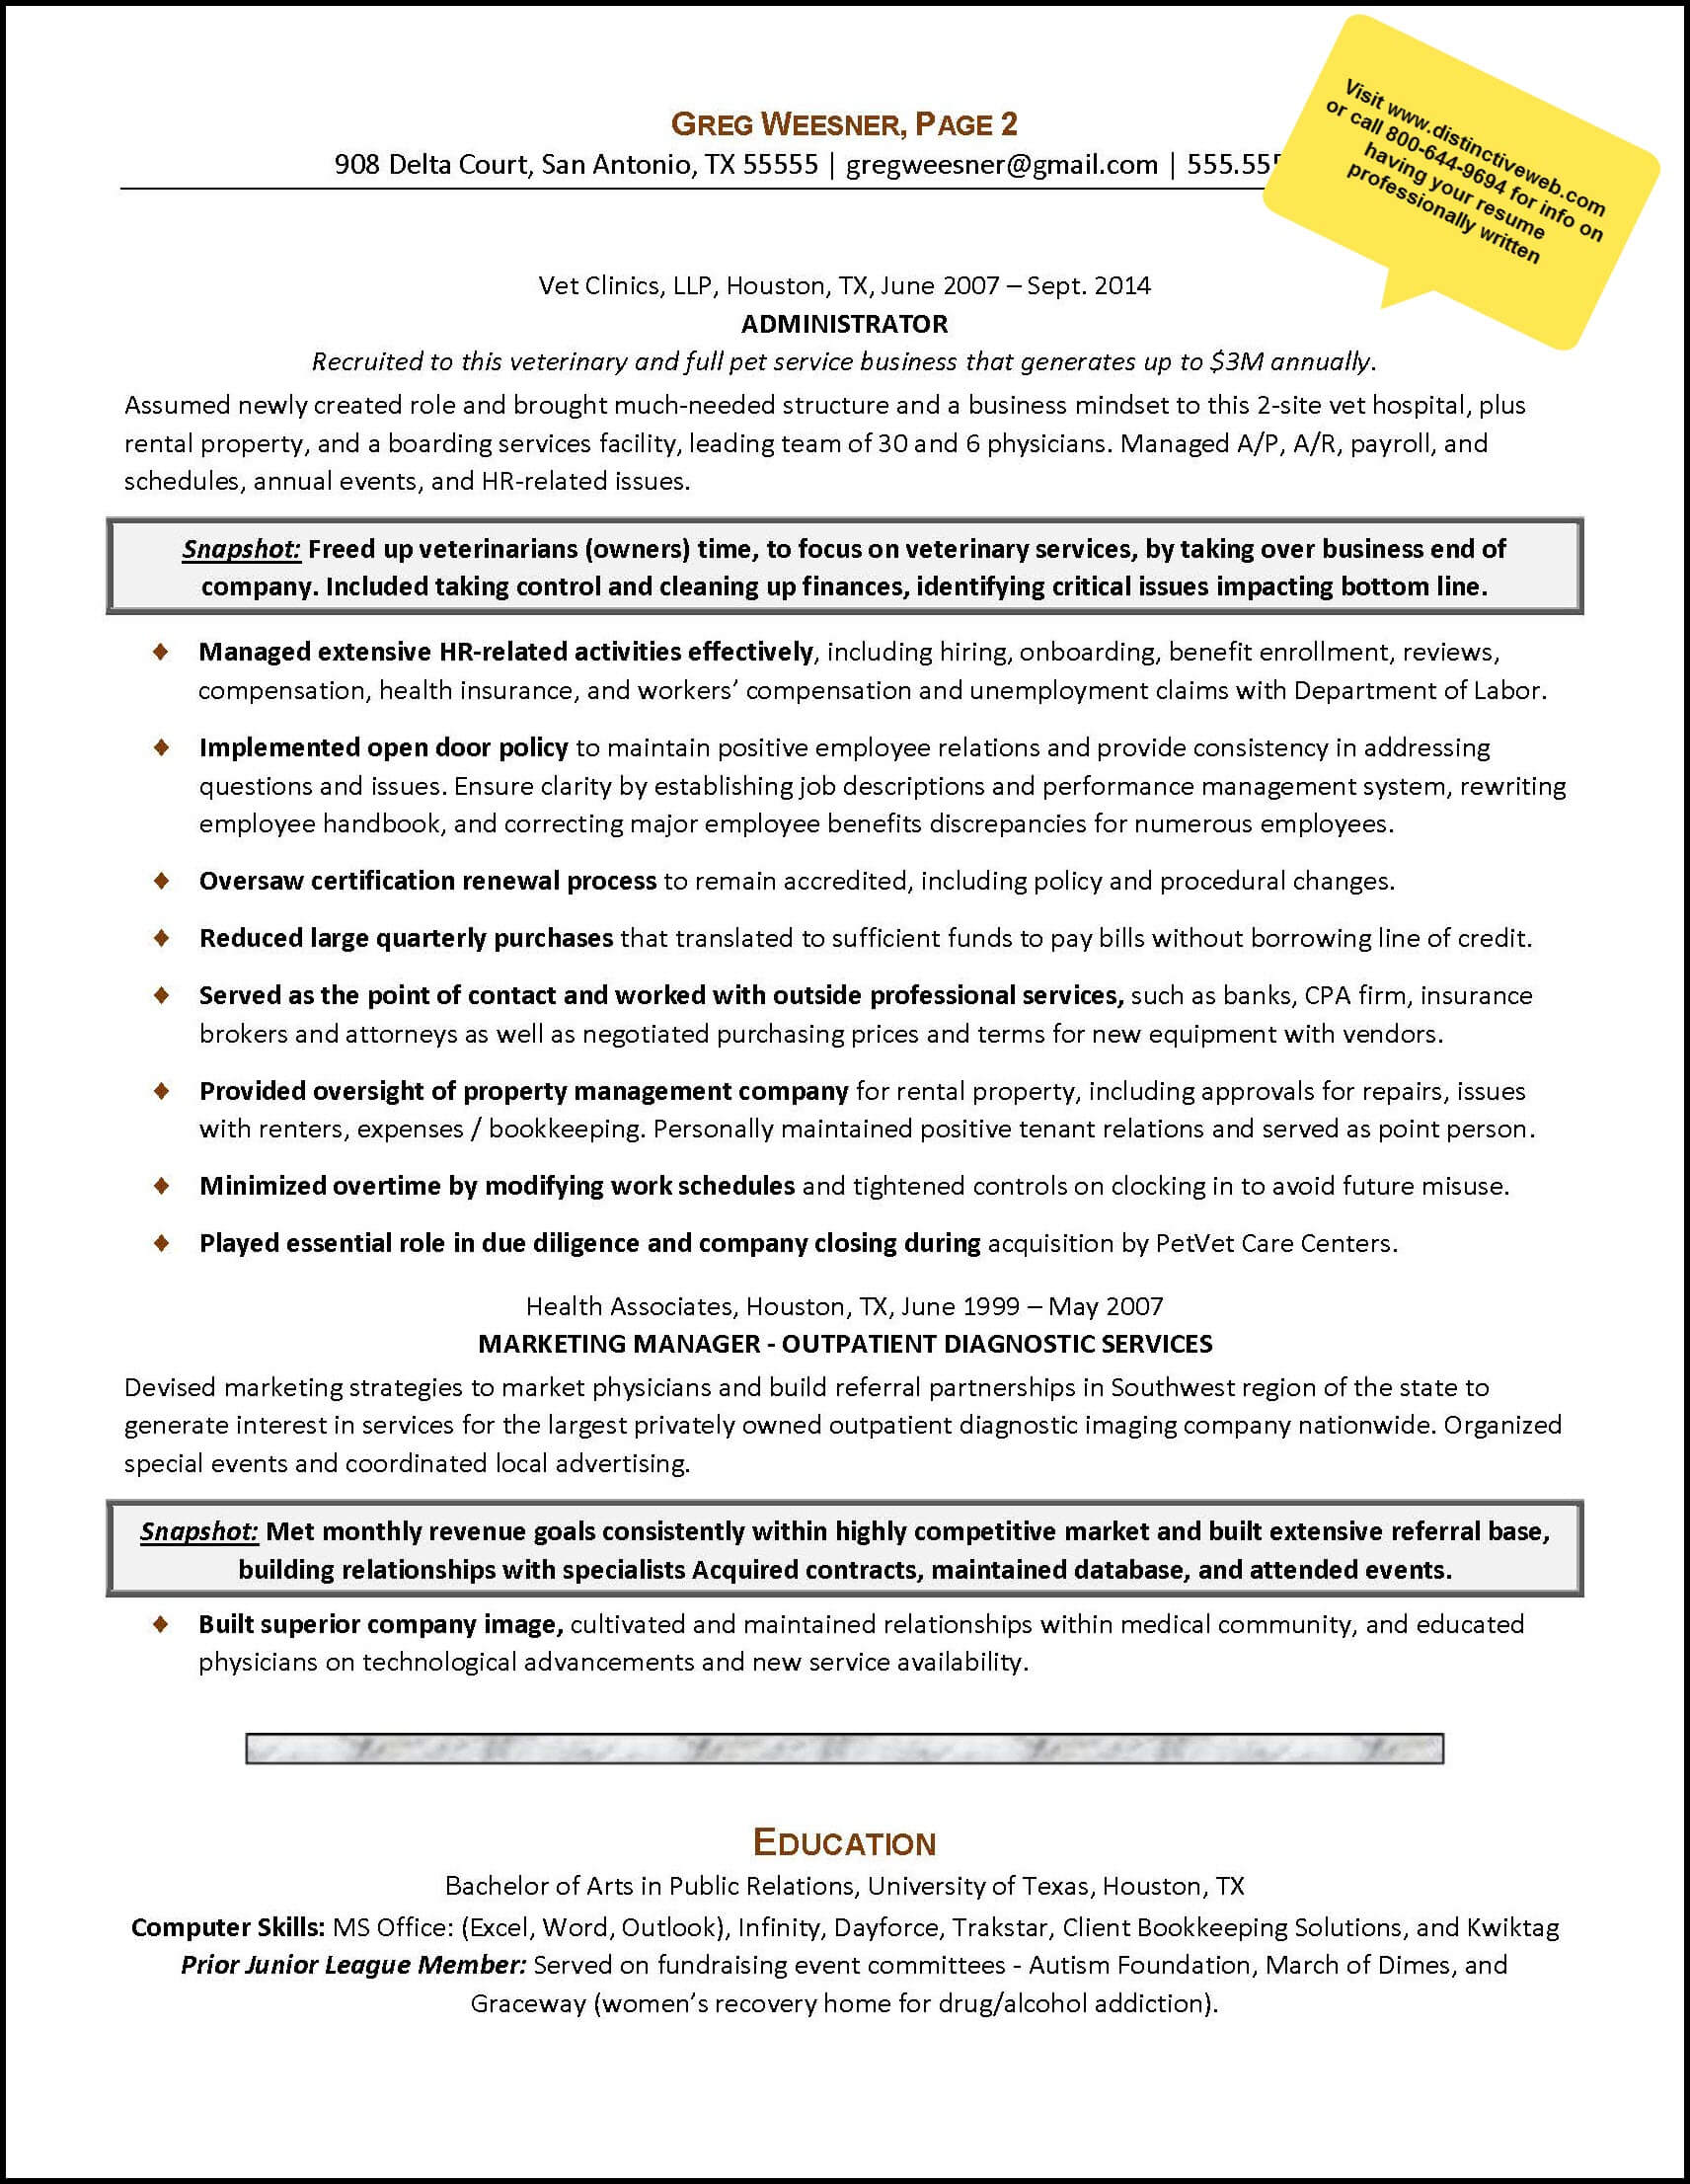 sample career change resume for an administrative services manager page 2